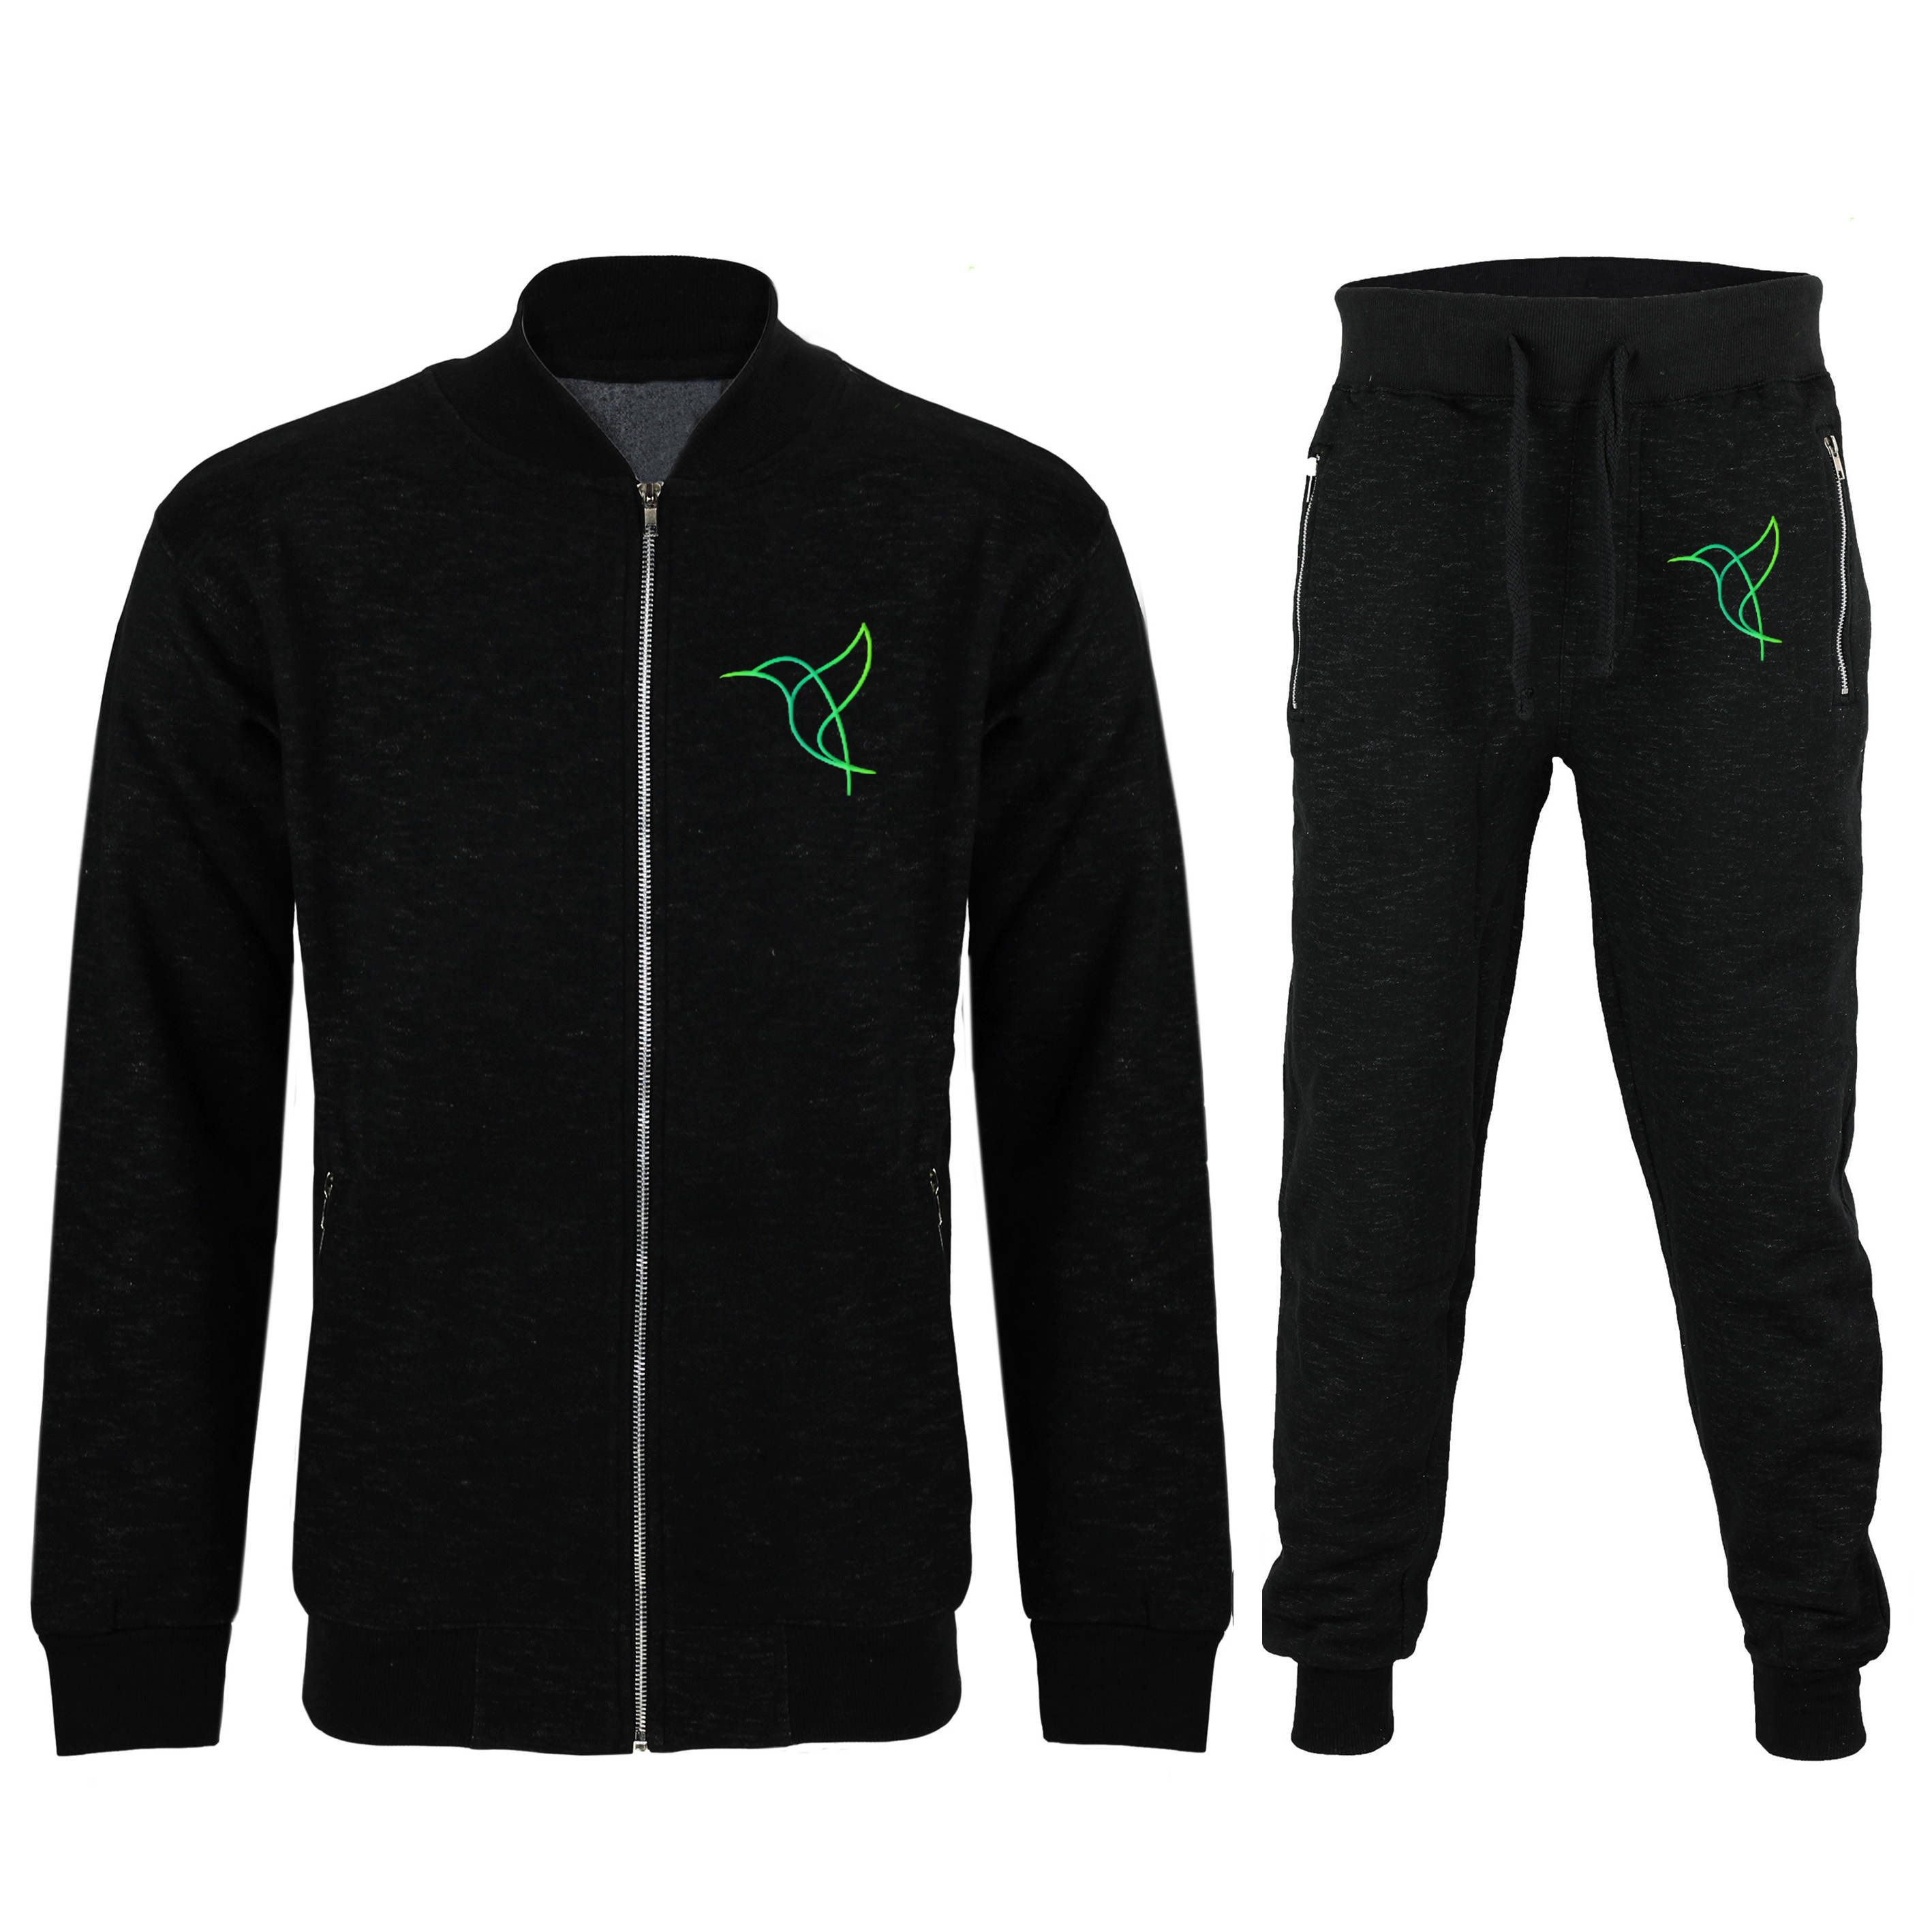 Tracksuit with high quality full sublimation latest design ...